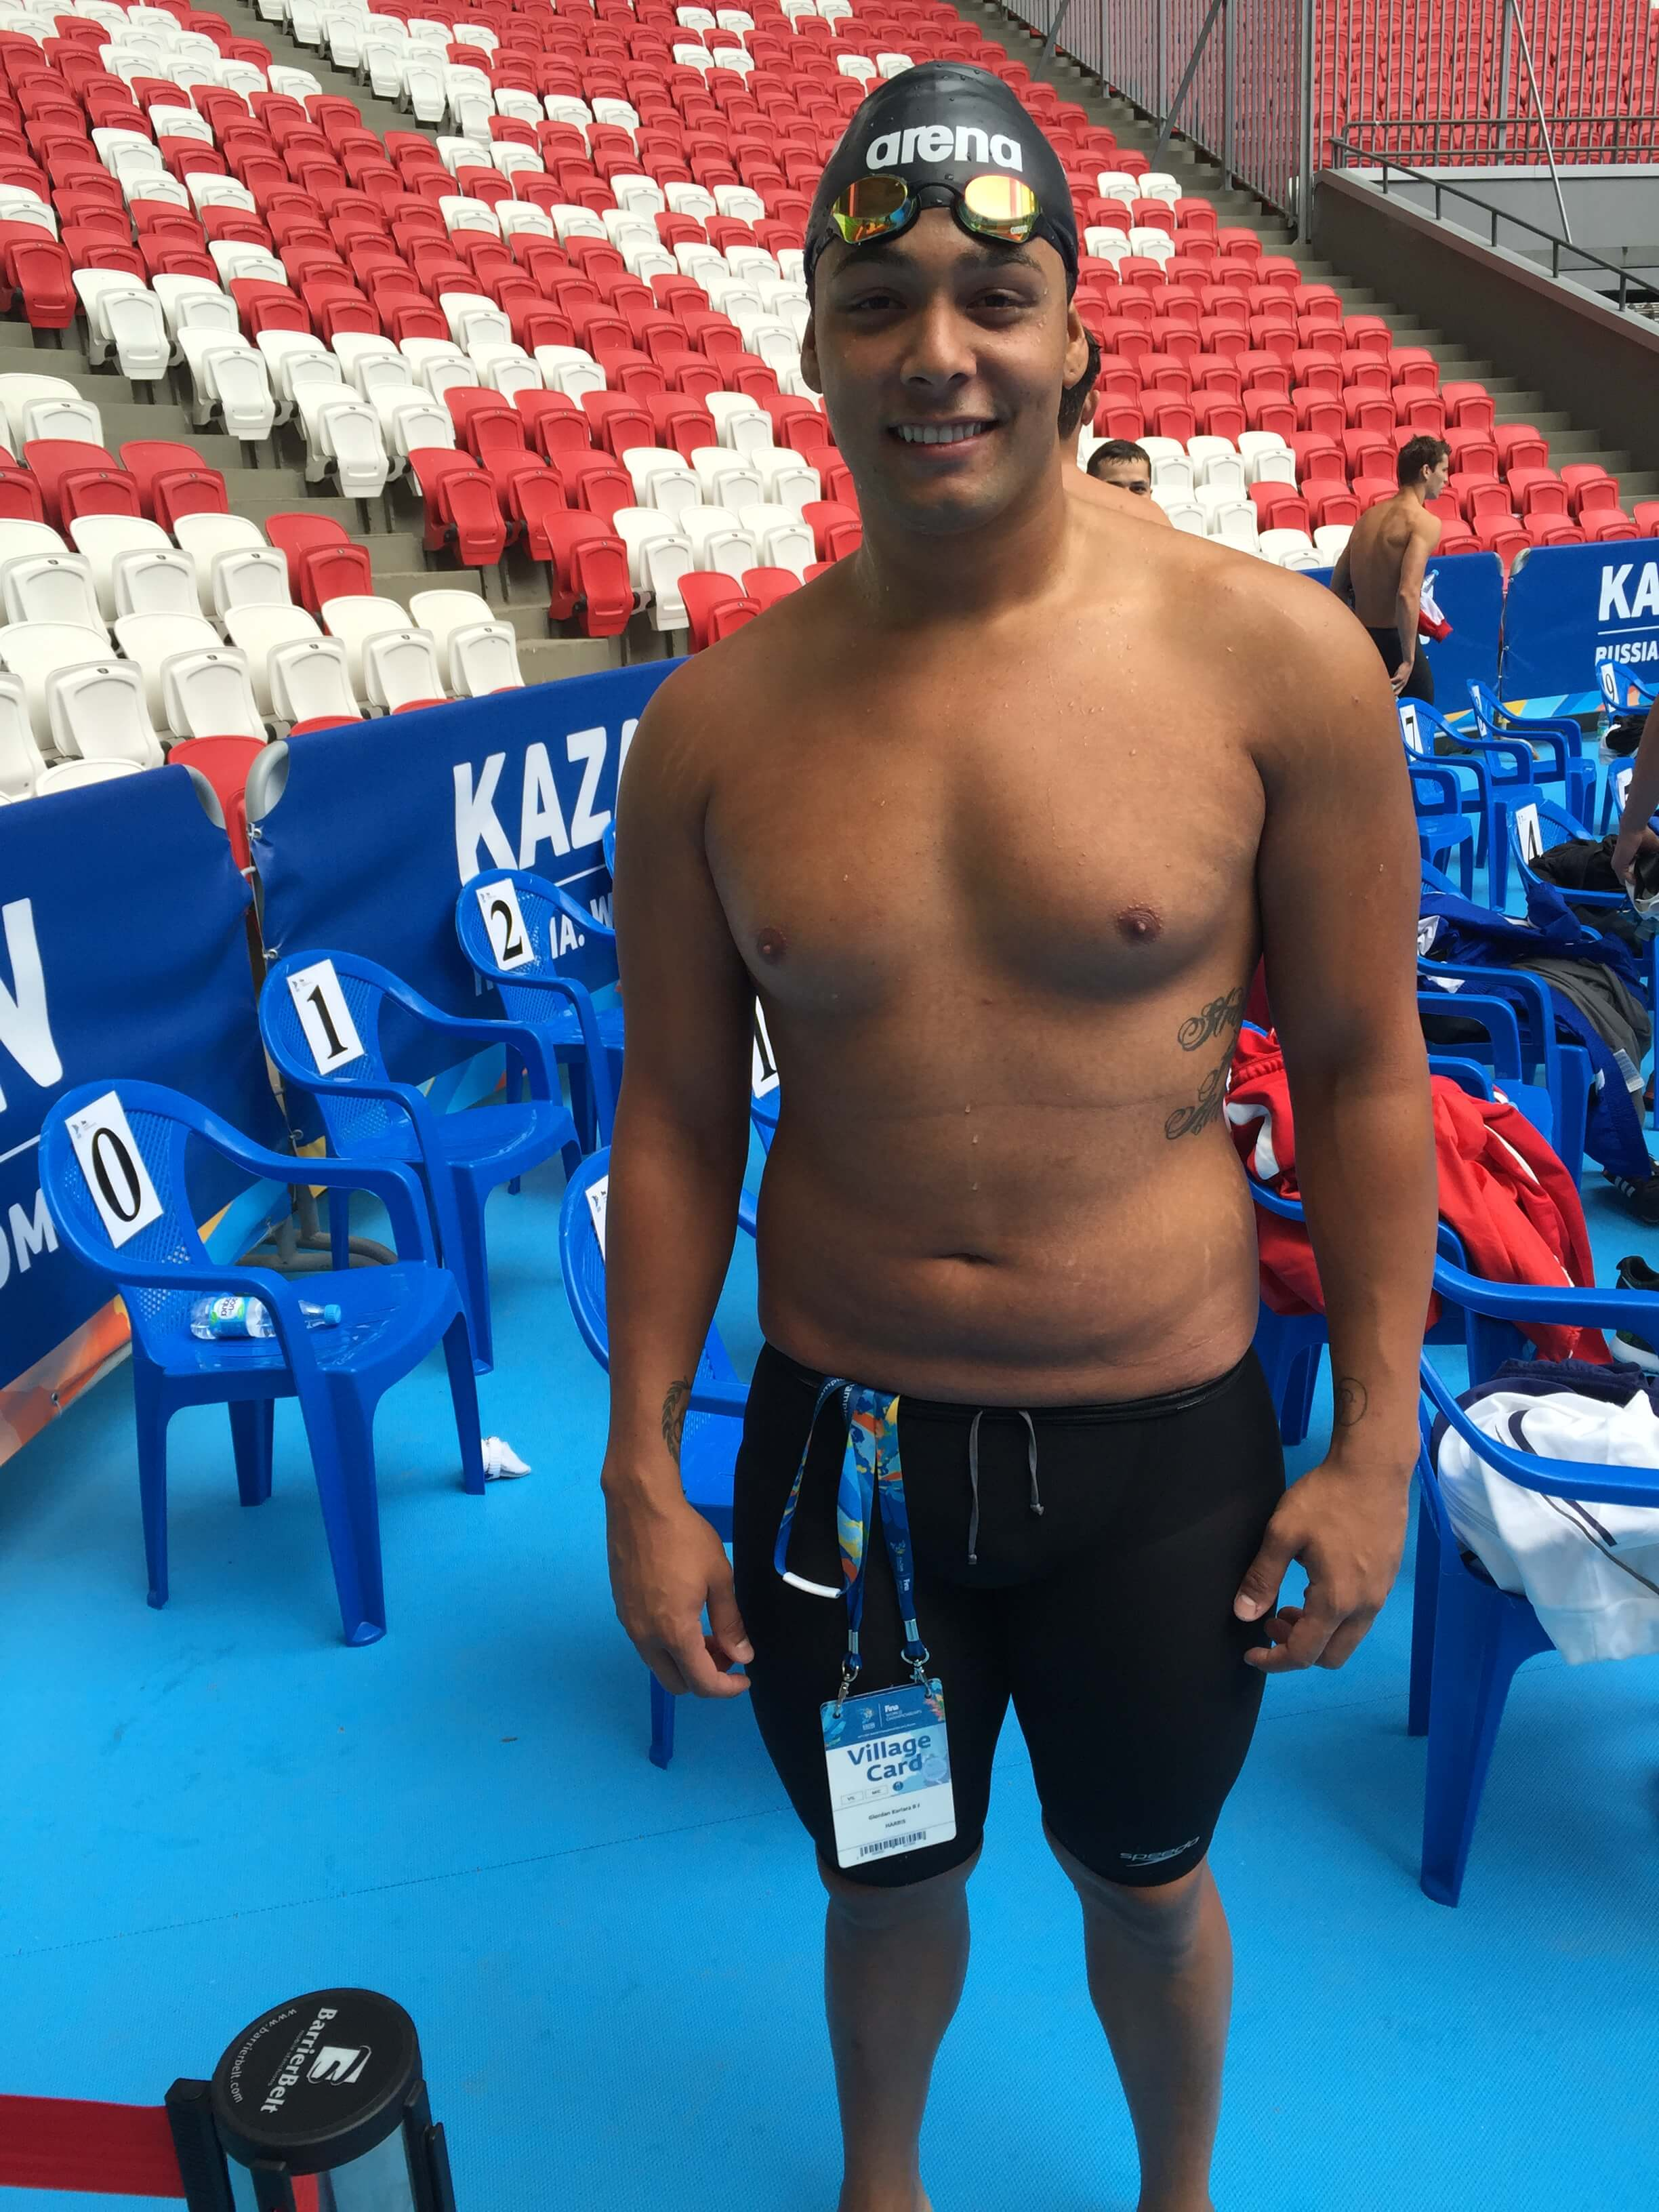 Giordan Harris of the Marshall Islands after his 100 free swim